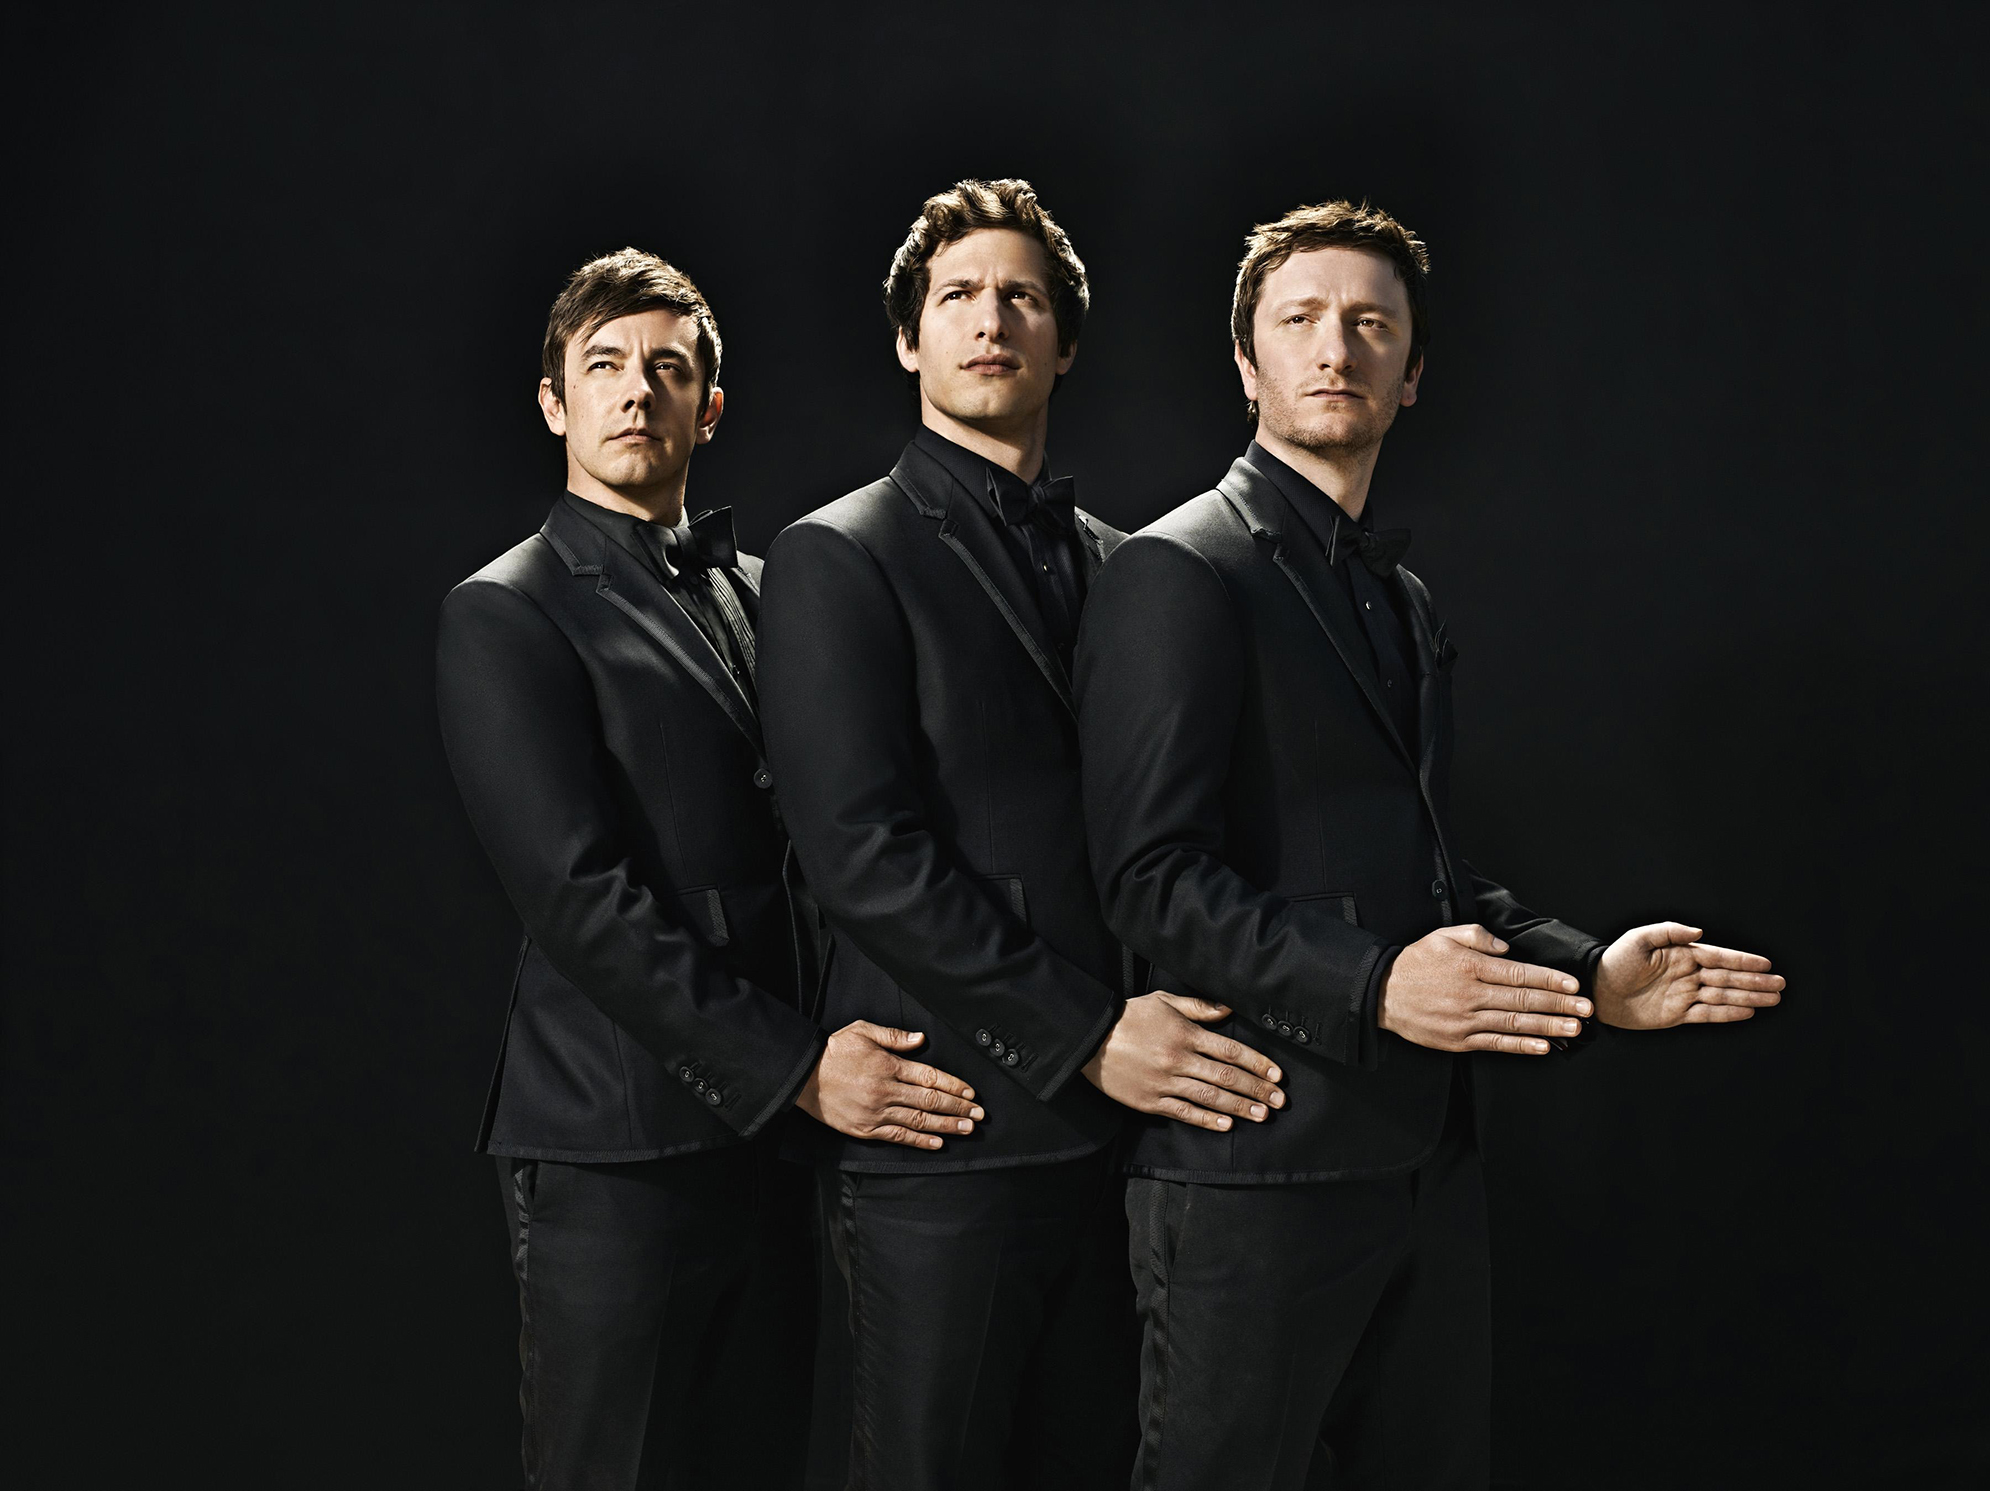 The Lonely Island official site